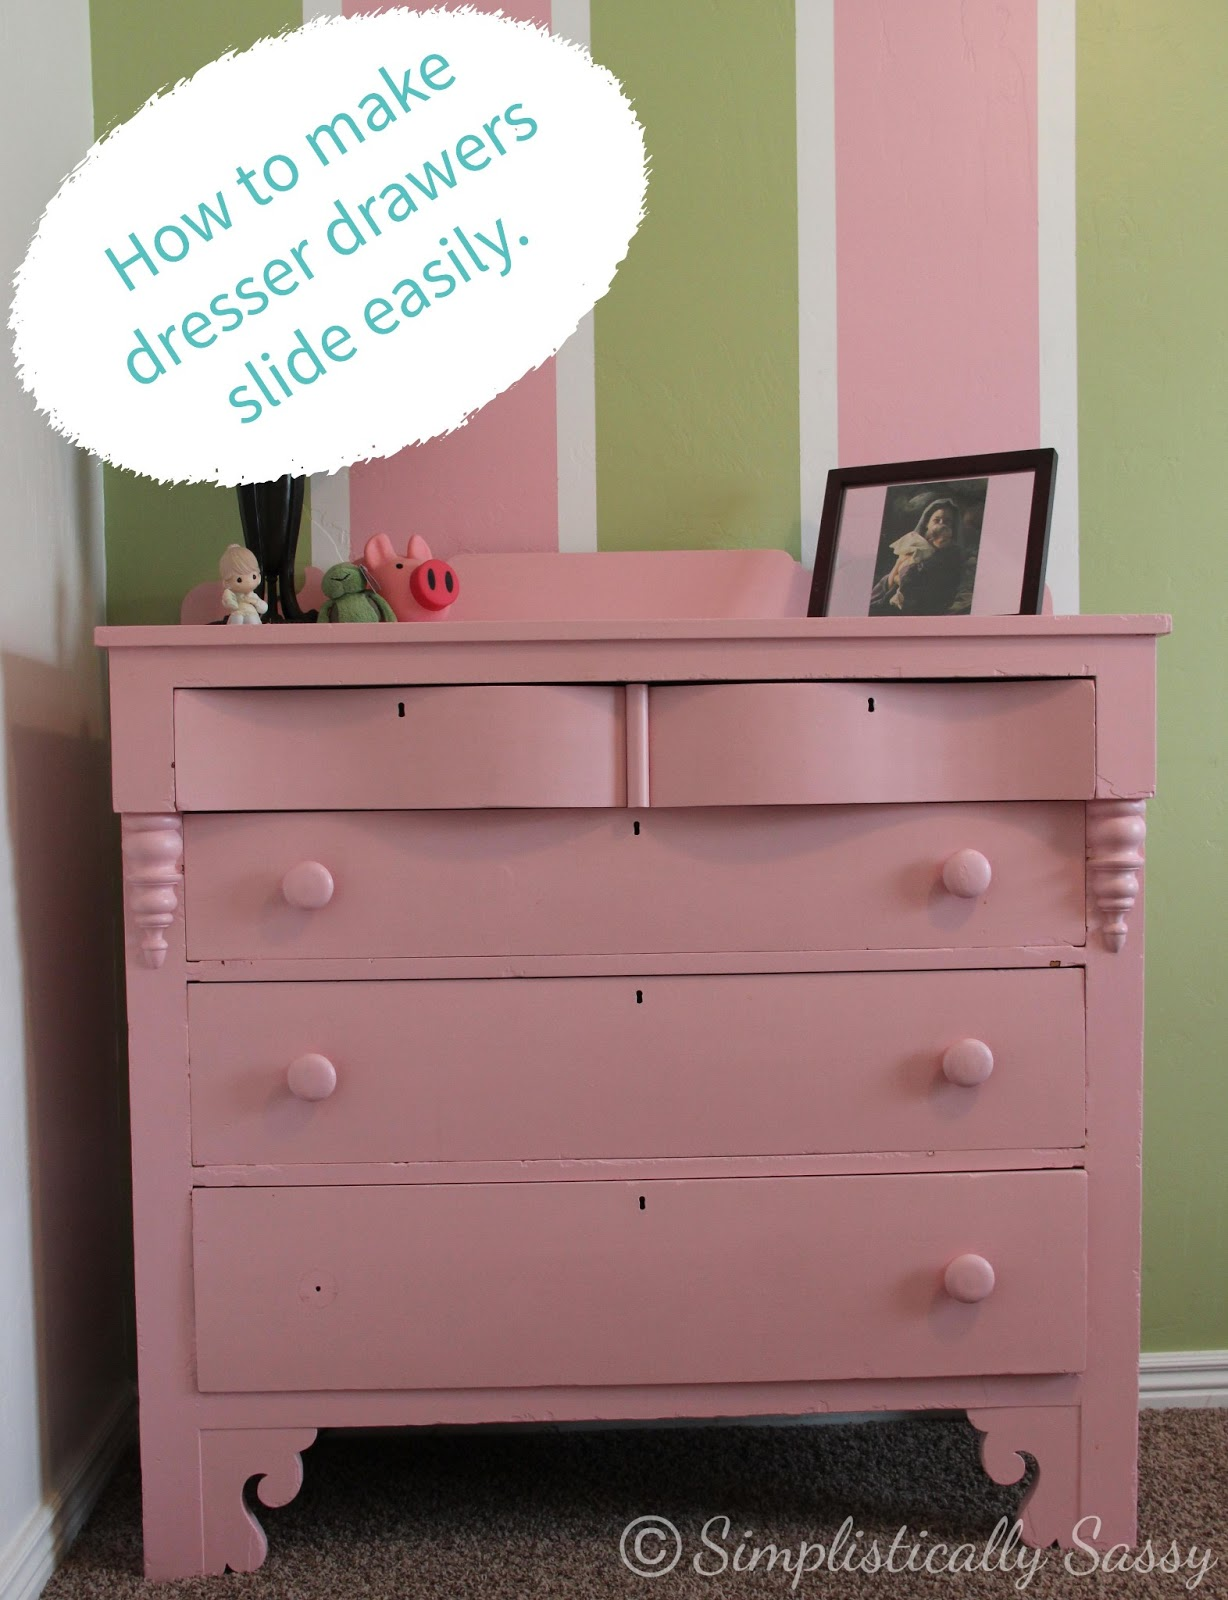 How To Make Dresser Drawers Glide